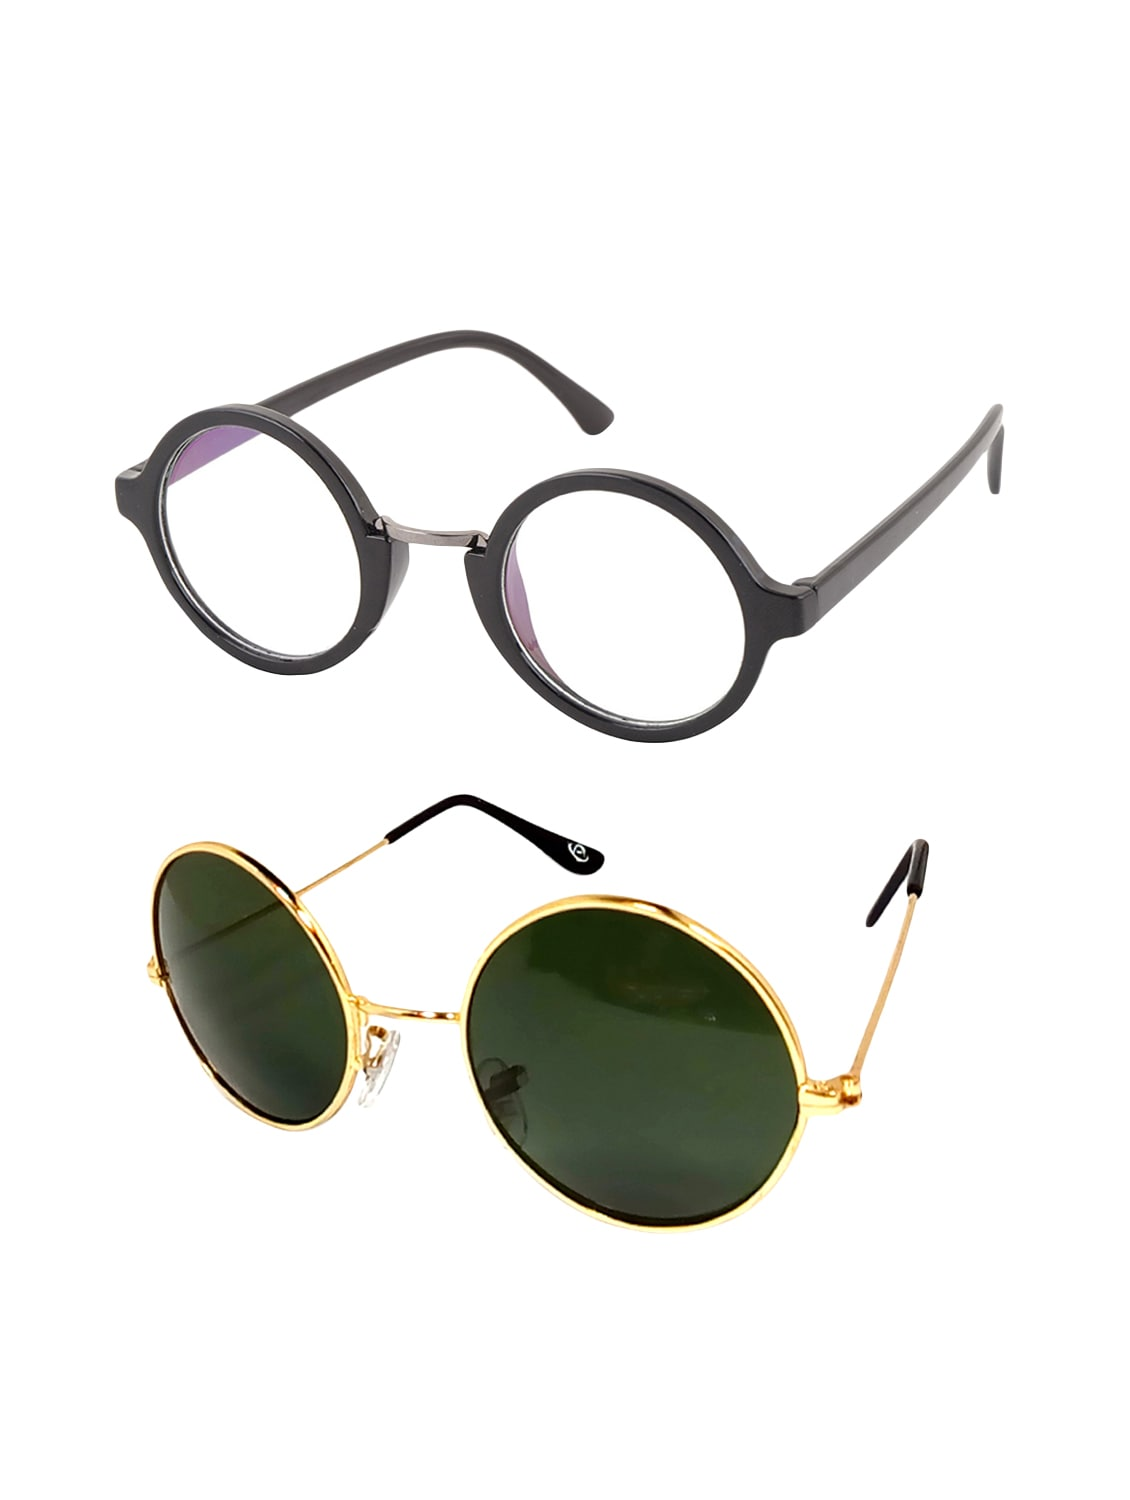 010f33d3d8 Buy Aventus Stylish Sunglasses Combo-clear Round Sunglasses   Green Metal  Round Sunglasses For Men Women by Aventus - Online shopping for Sunglasses  in ...